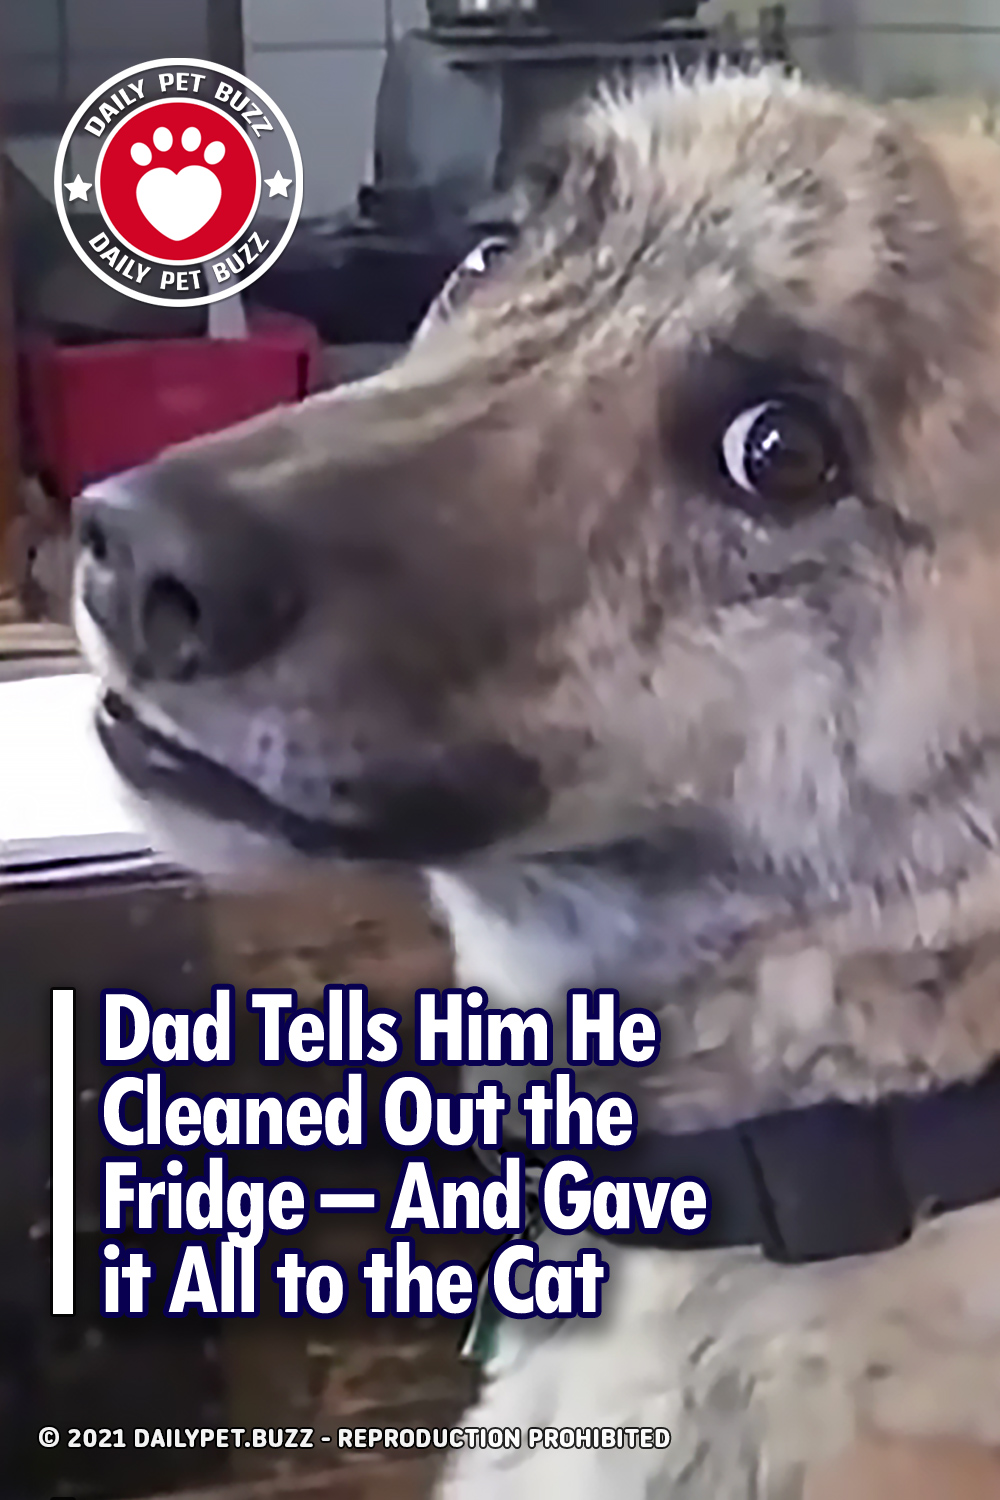 Dad Tells Him He Cleaned Out the Fridge - And Gave it All to the Cat